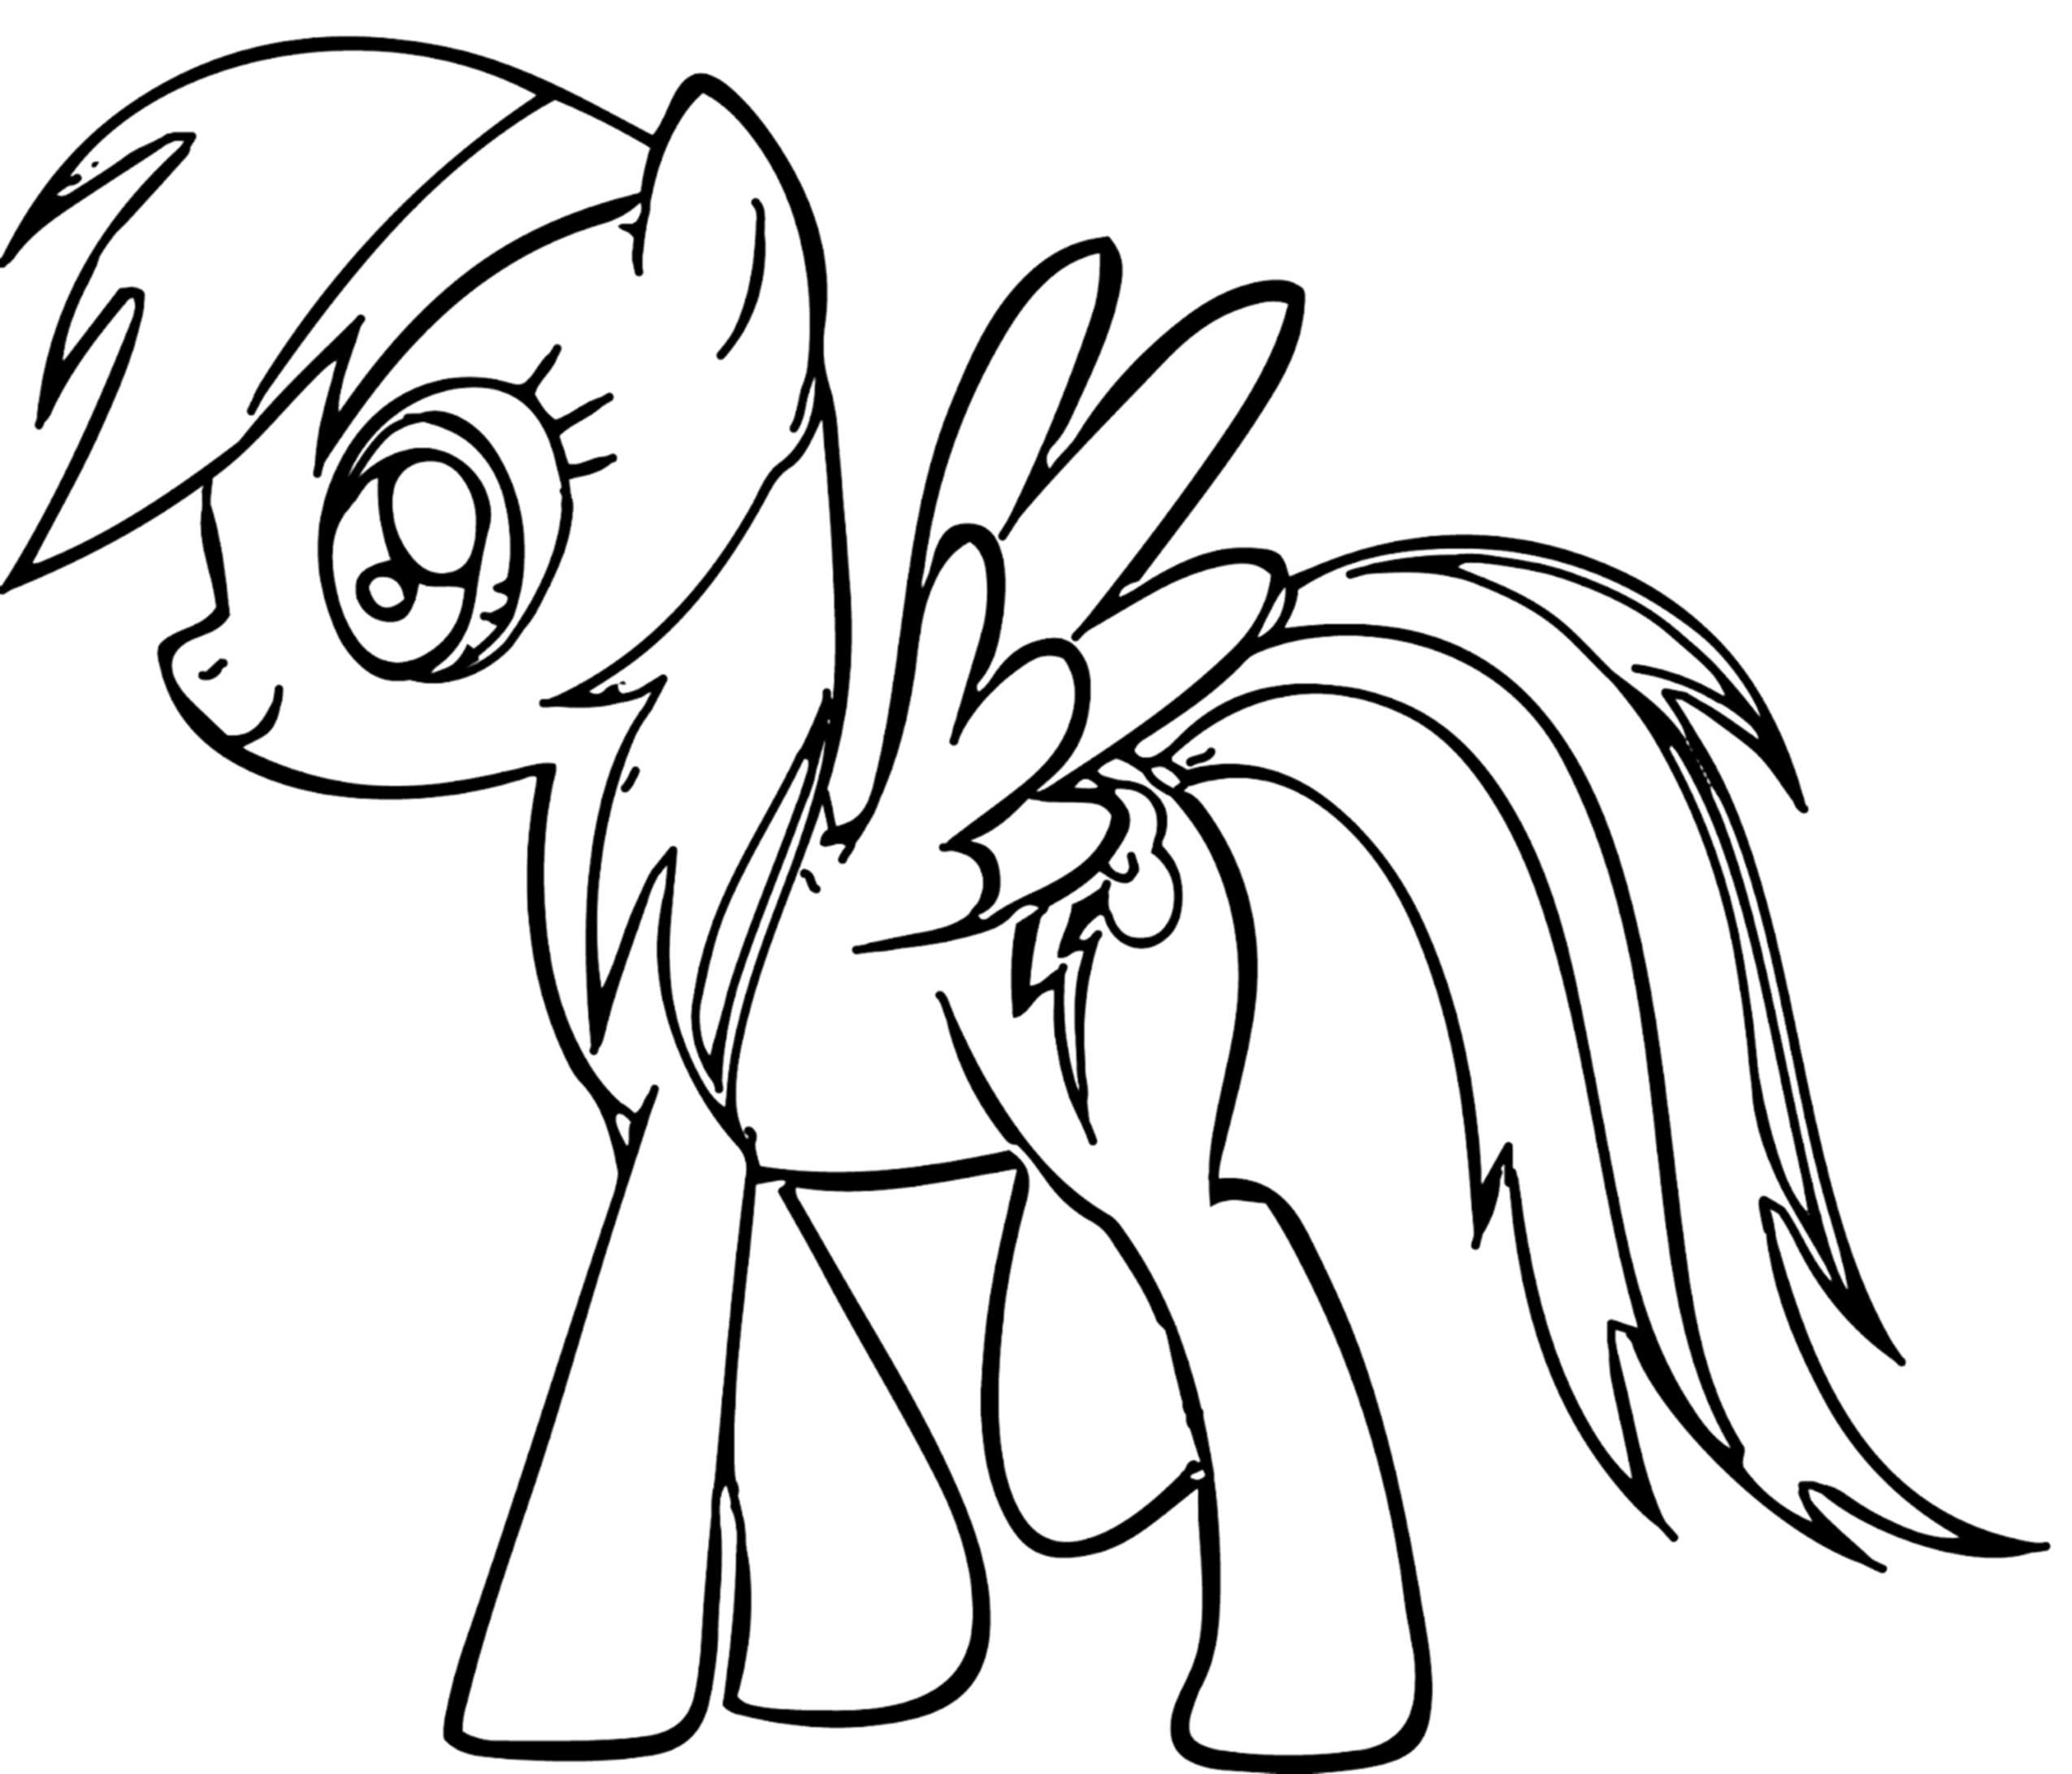 rainbow dash coloring page printable - Rainbow Dash Coloring Page